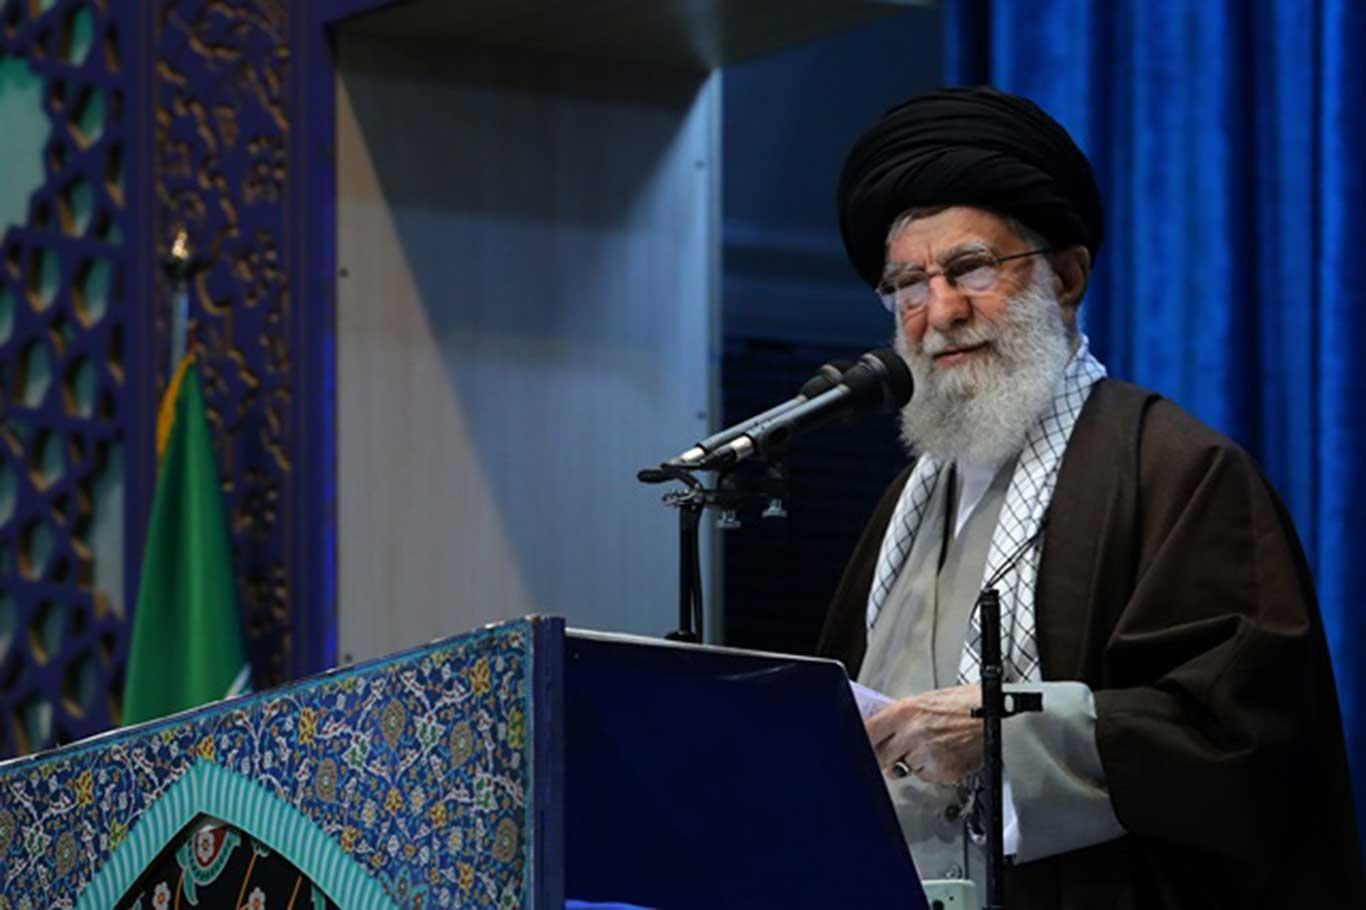 Khamenei: Iran's response was a major blow to America's fearsome superpower image